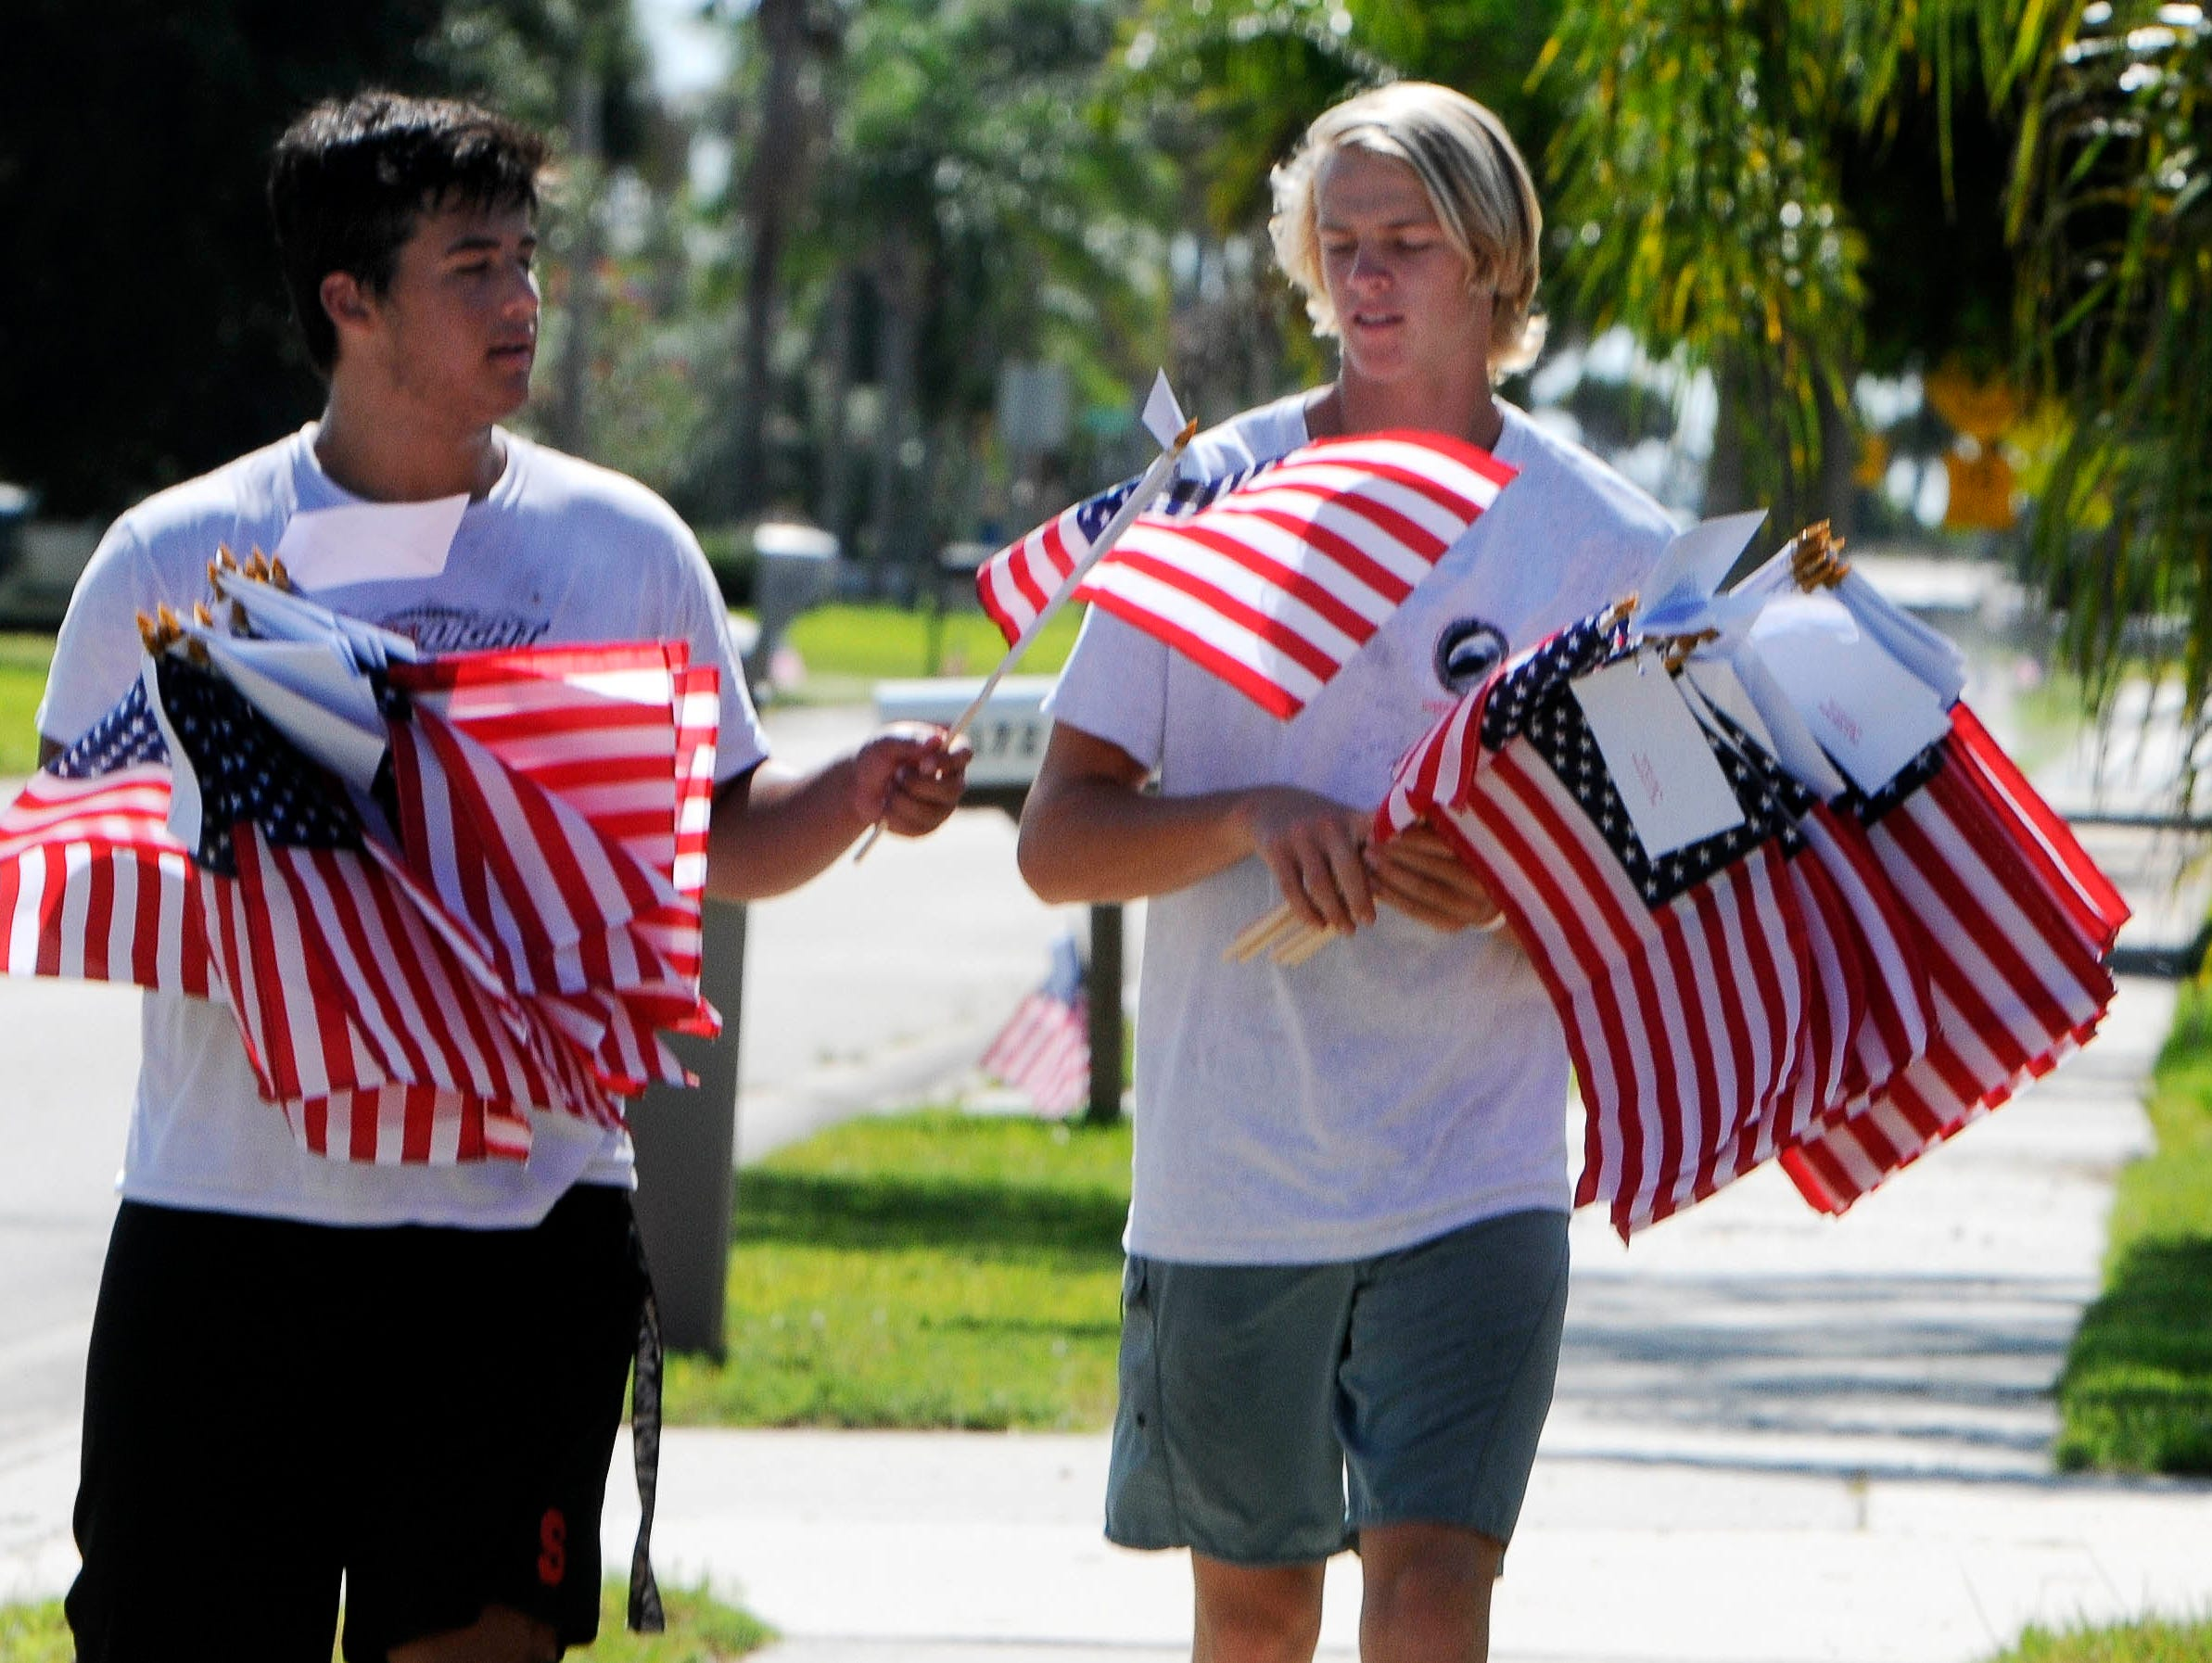 Alex Iervasi and Noah Mumme help set out American flags Thursday morning in Satellite Beach. Students from Satellite High's football and ROTC squads help distribute American flags as part of a fundraiser for the school.